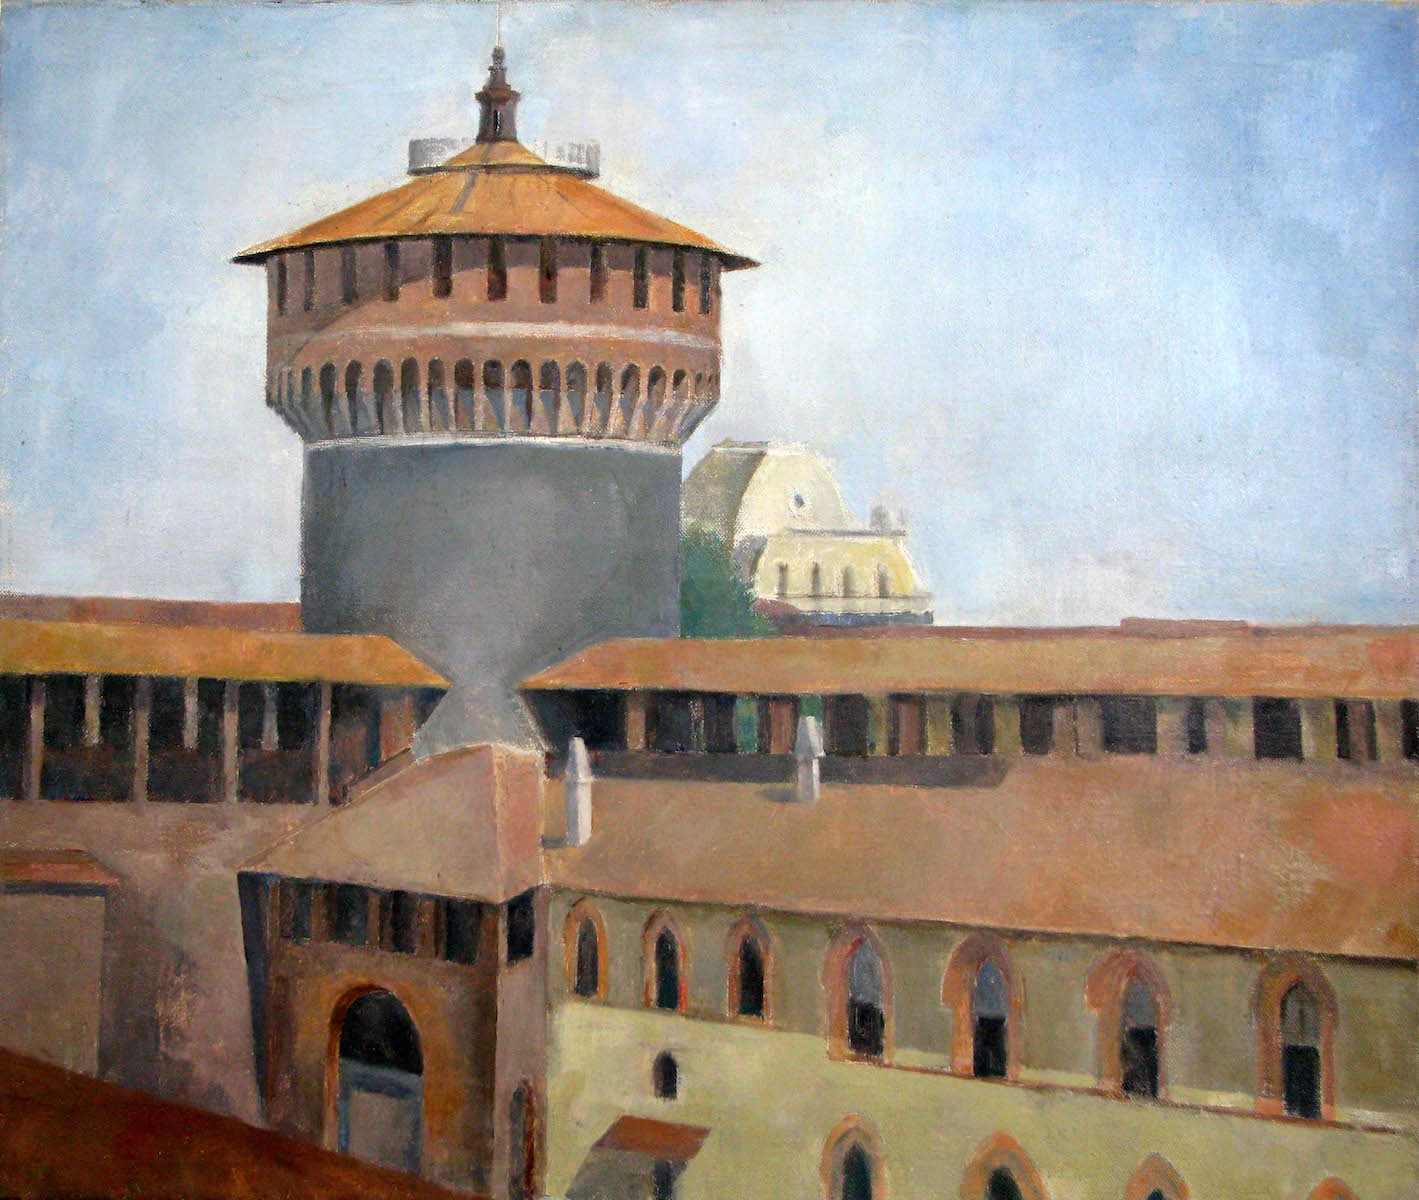 Castello Sforzesco, 23 x 27 inches, oil on linen